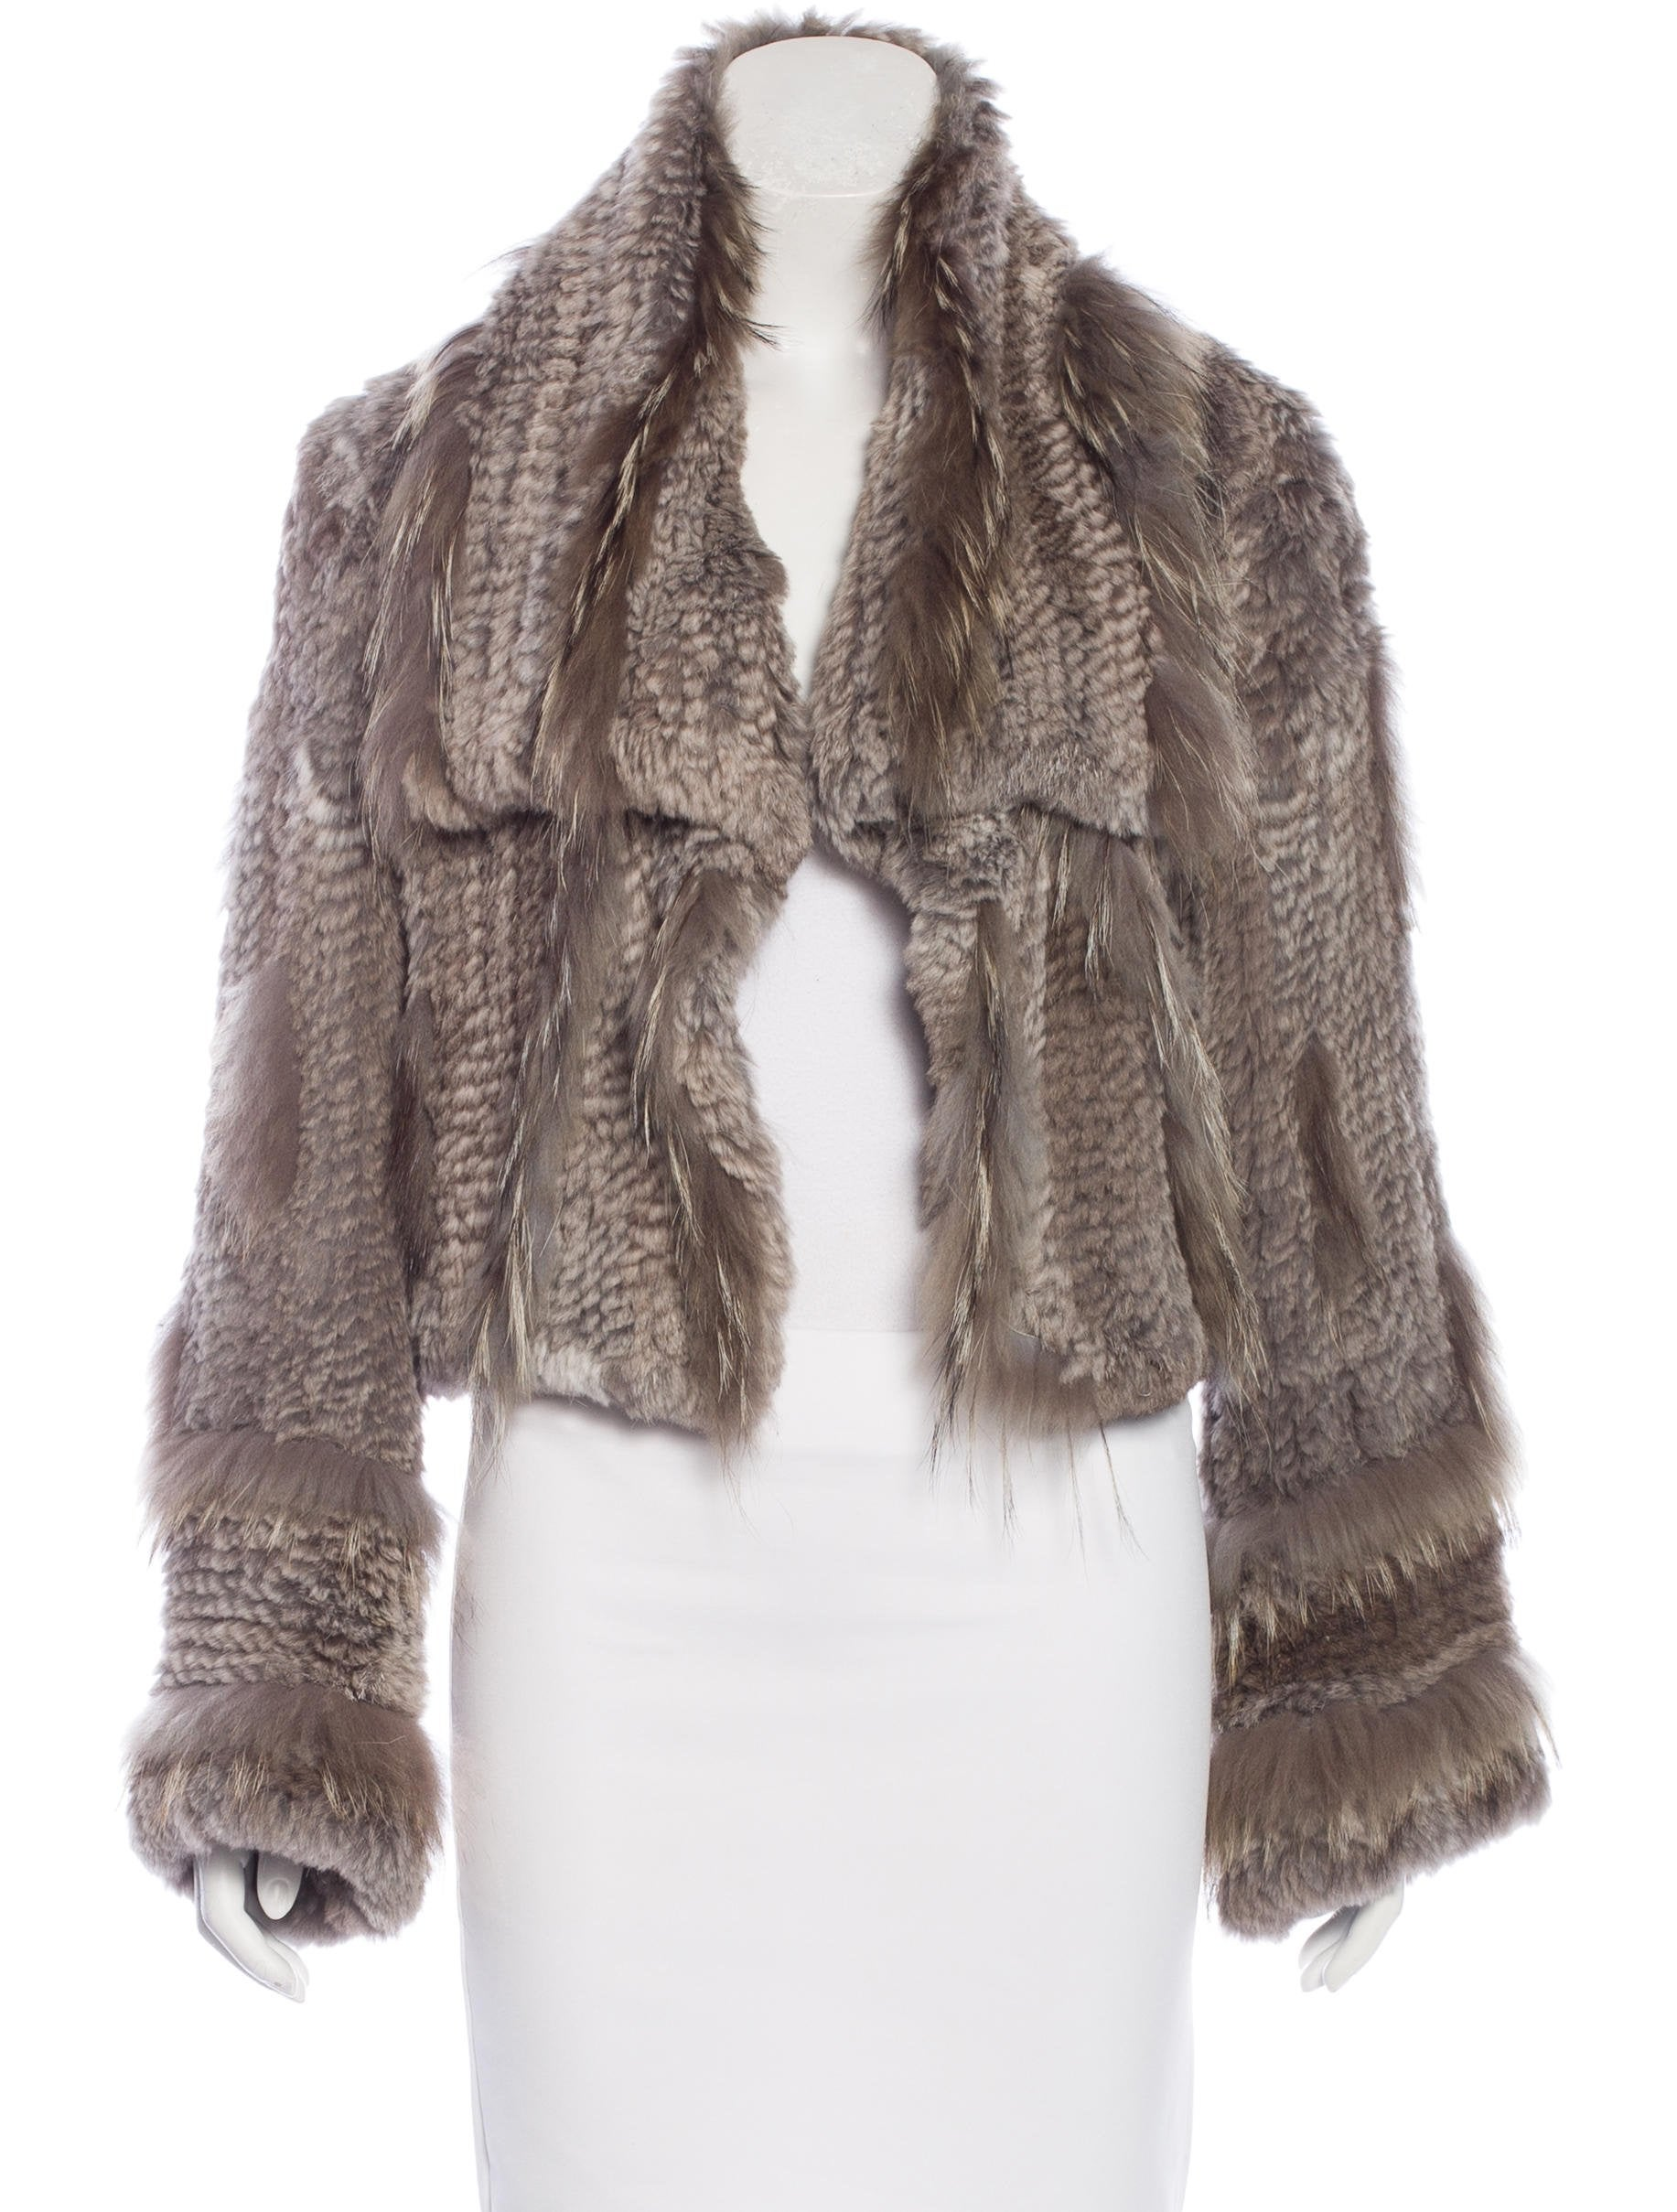 Love Token Knitted Fur Jacket - Clothing - WLTOK20008 The RealReal